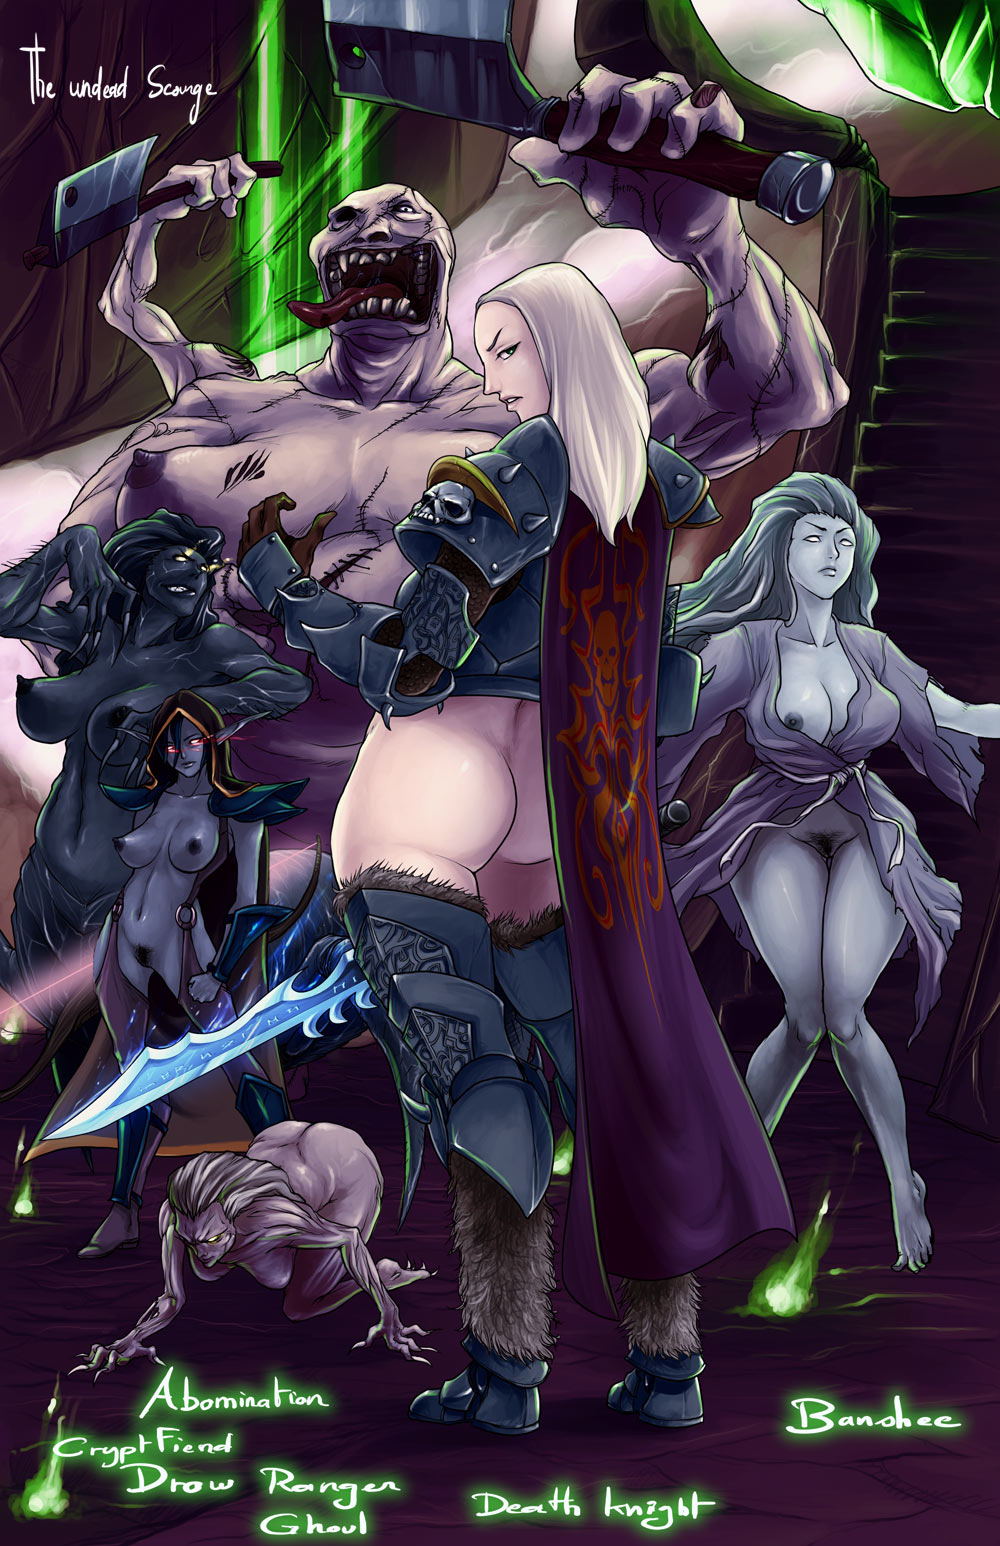 World of warcraft undead shemale erotica photo